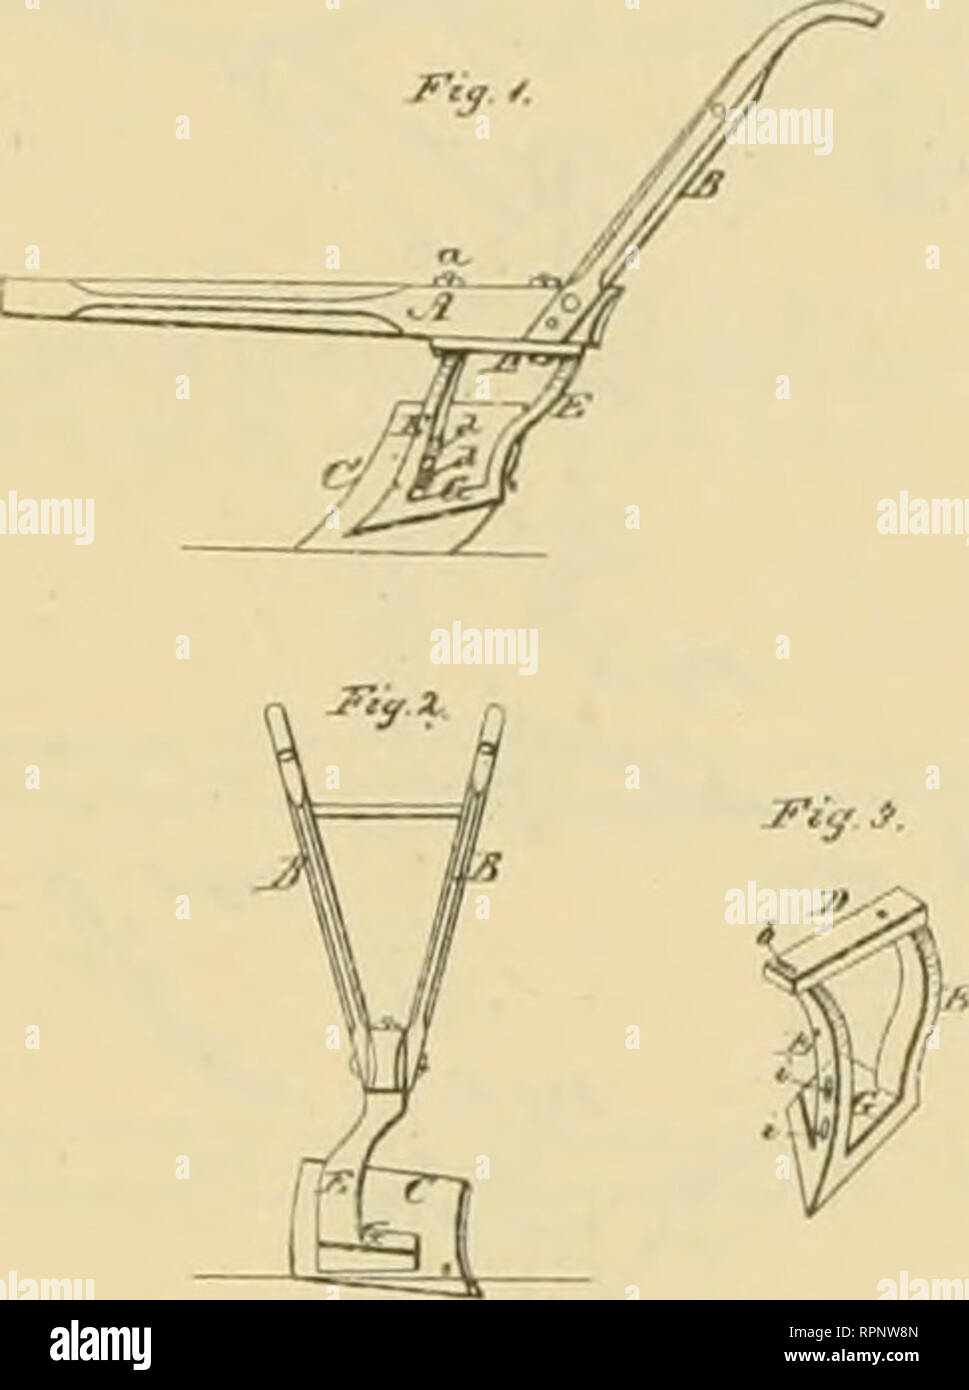 . Allen's digest of plows, with attachments, patented in the United States from A.D. 1789 to January 1883 ... Plows; Patents. 1. M. COBB. Cotton Scraping-Plows. t>lo. 144,509. PaliiiladNo>..ll. 1813.. /2i/<*^ ii^i'M. No. 146.848 F. G. THURSTON. fuTow-Scrapers. Pjifnledlm. ?(, IB7<. E. HAIMAN. Sweeps 7or Cultivators anil Plows. IVo.147,633 Palenltd F.b. 17, 1874.. Please note that these images are extracted from scanned page images that may have been digitally enhanced for readability - coloration and appearance of these illustrations may not perfectly resemble the original work.. A - Stock Image